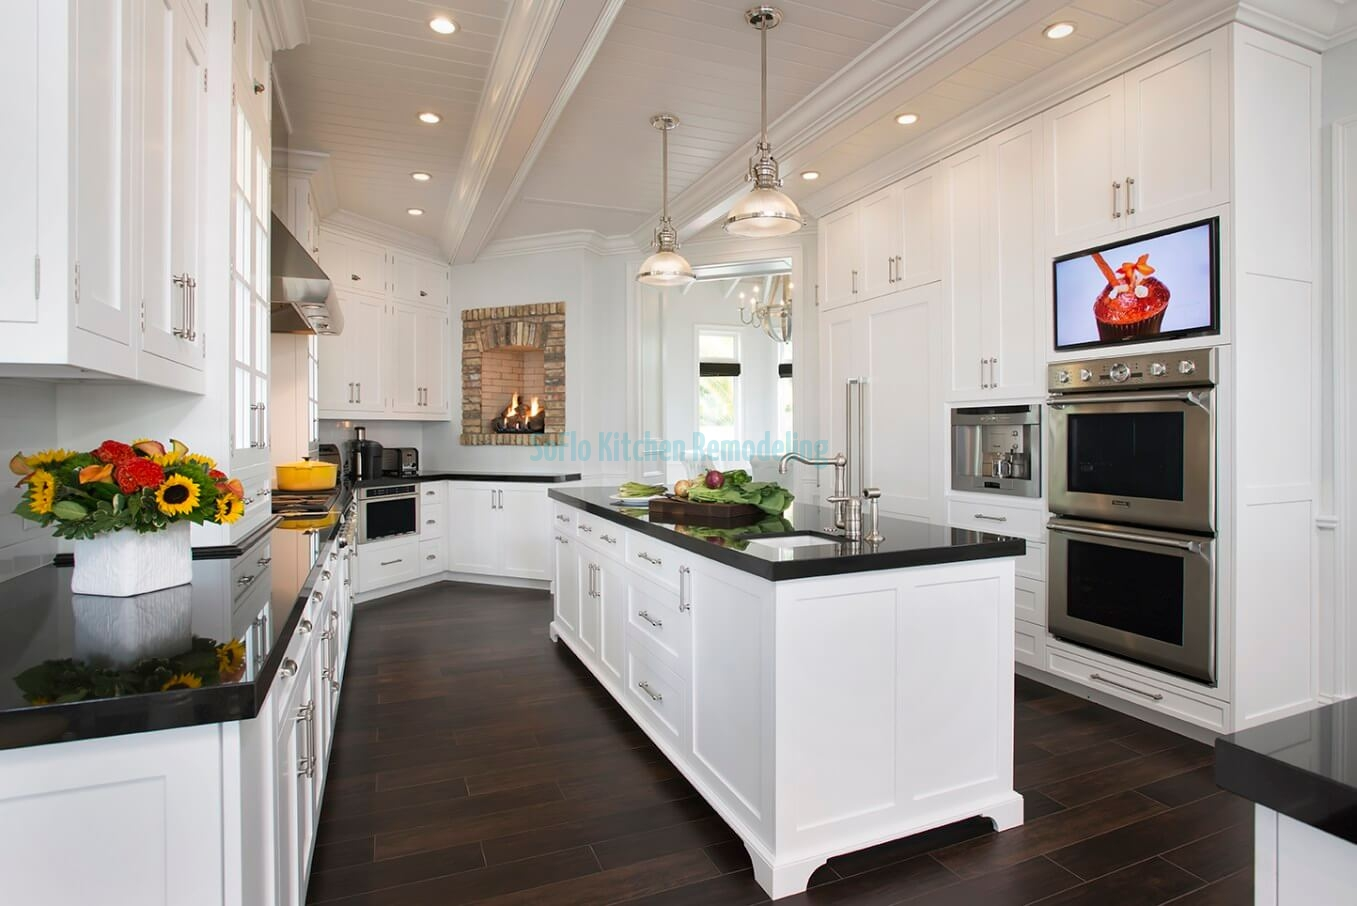 1-SoFlo-Kitchen-Remodeling-Custom-Cabinets-backsplashes-flooring-countertops